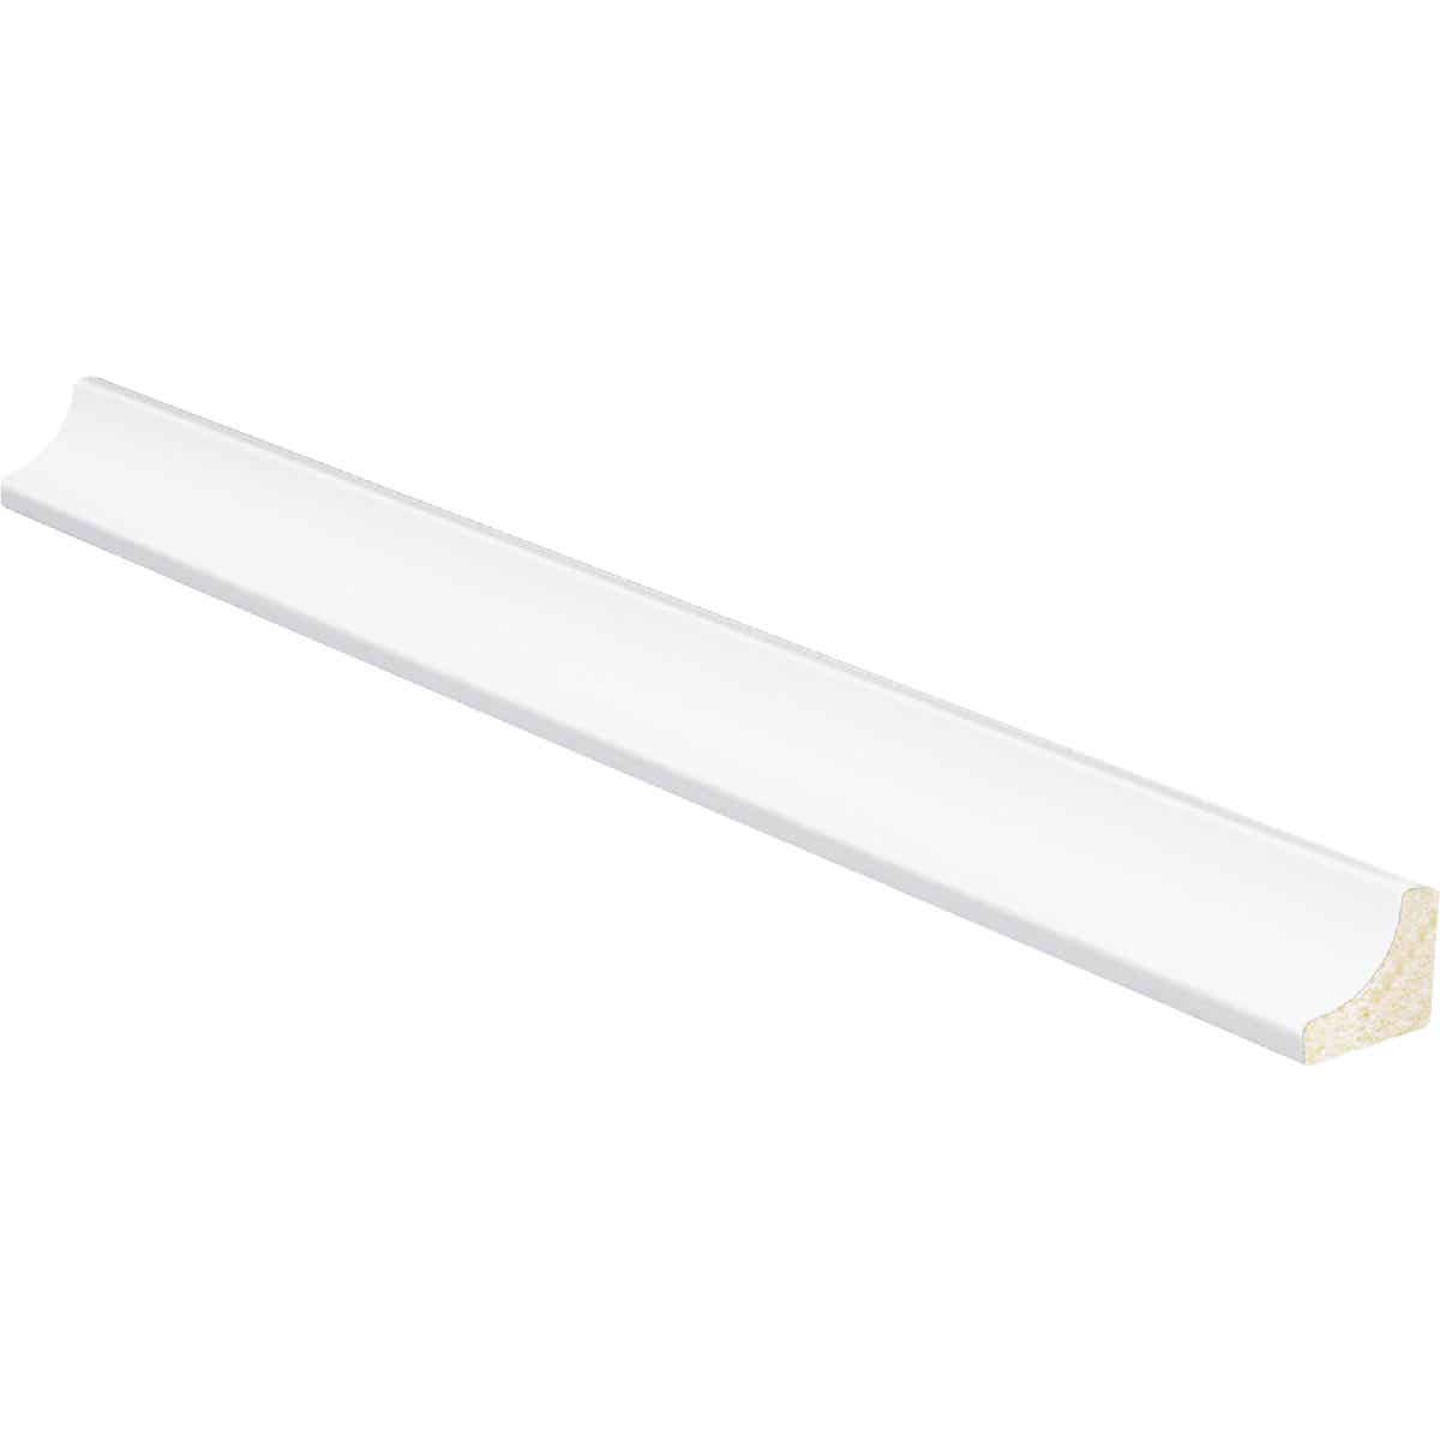 Inteplast Building Products 11/16 In. W. x 11/16 In. H. x 8 Ft. L. Crystal White Polystyrene Cove Molding Image 1